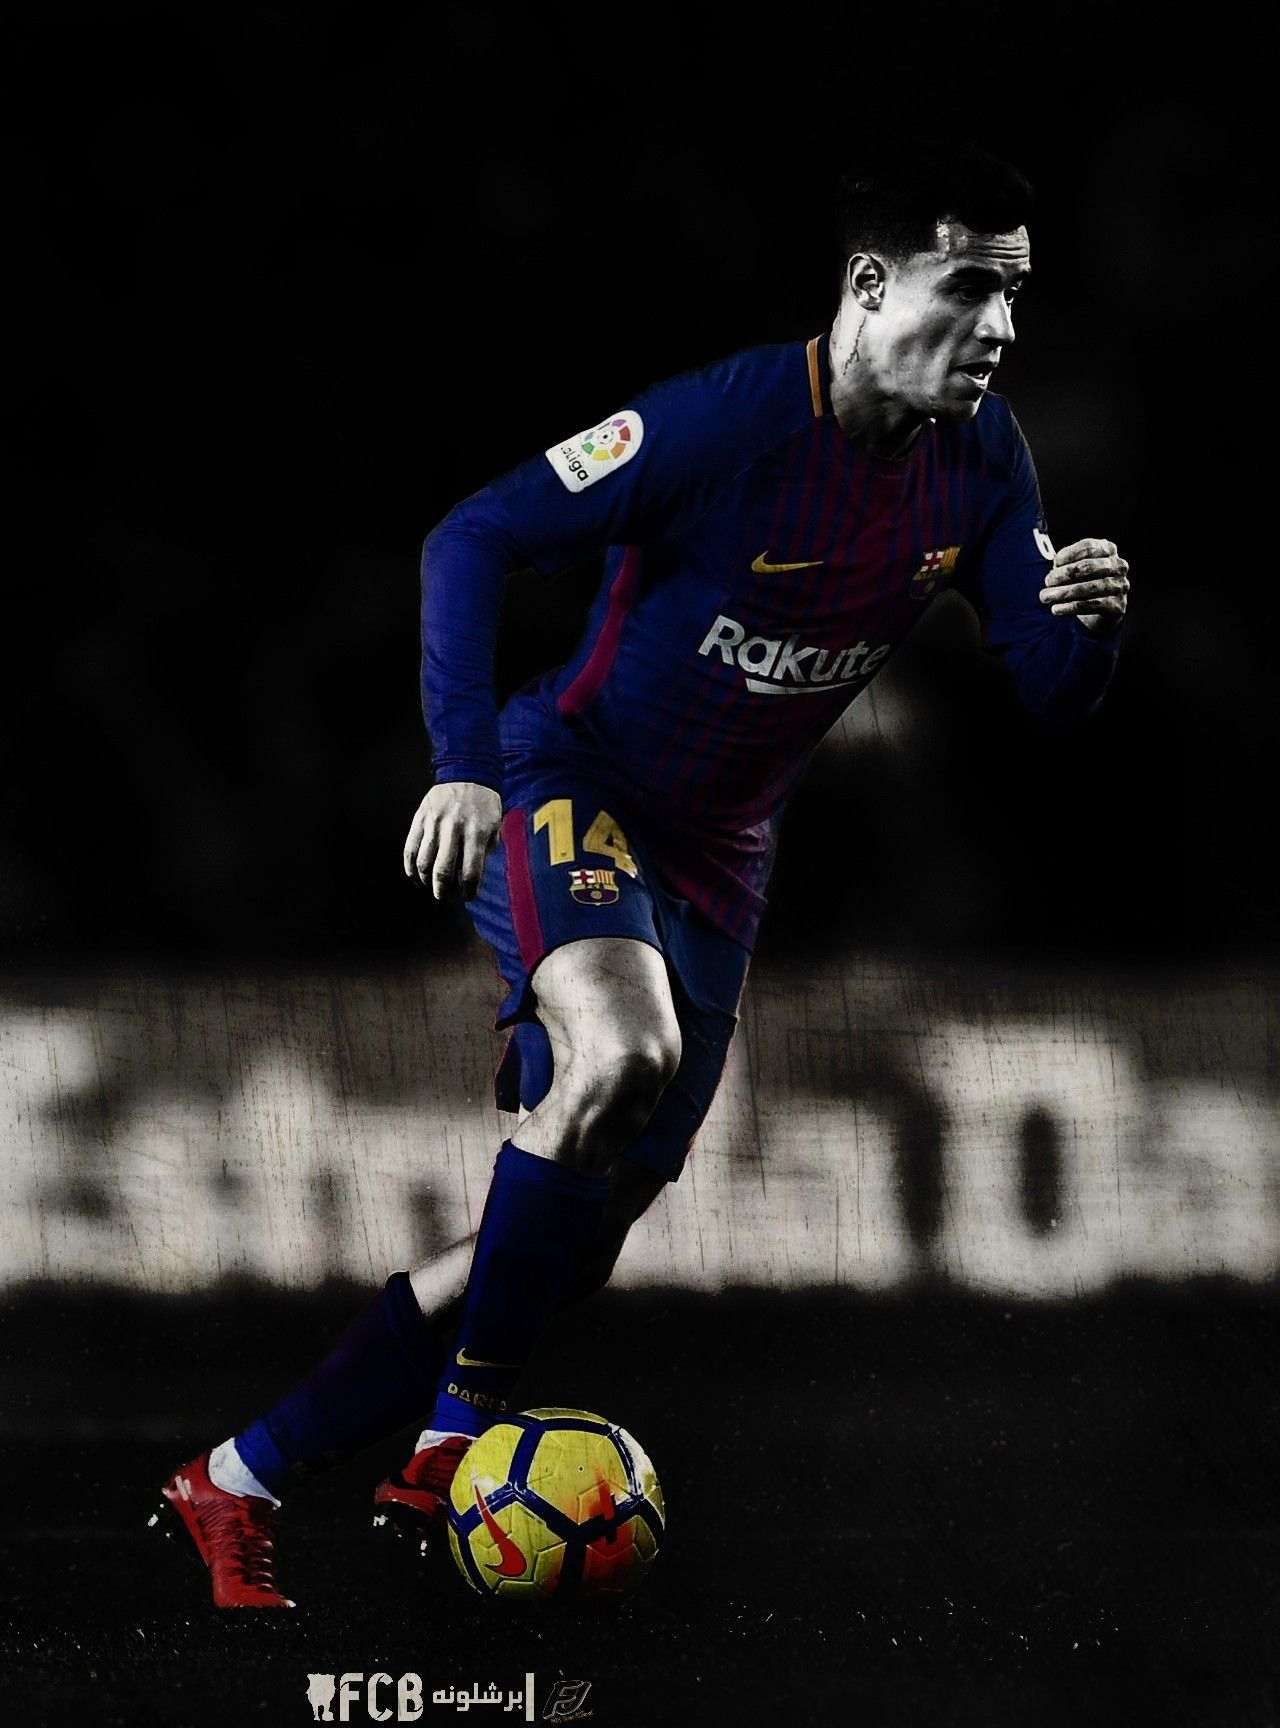 Wallpaper Coutinho Football Is Life Football Soccer Soccer